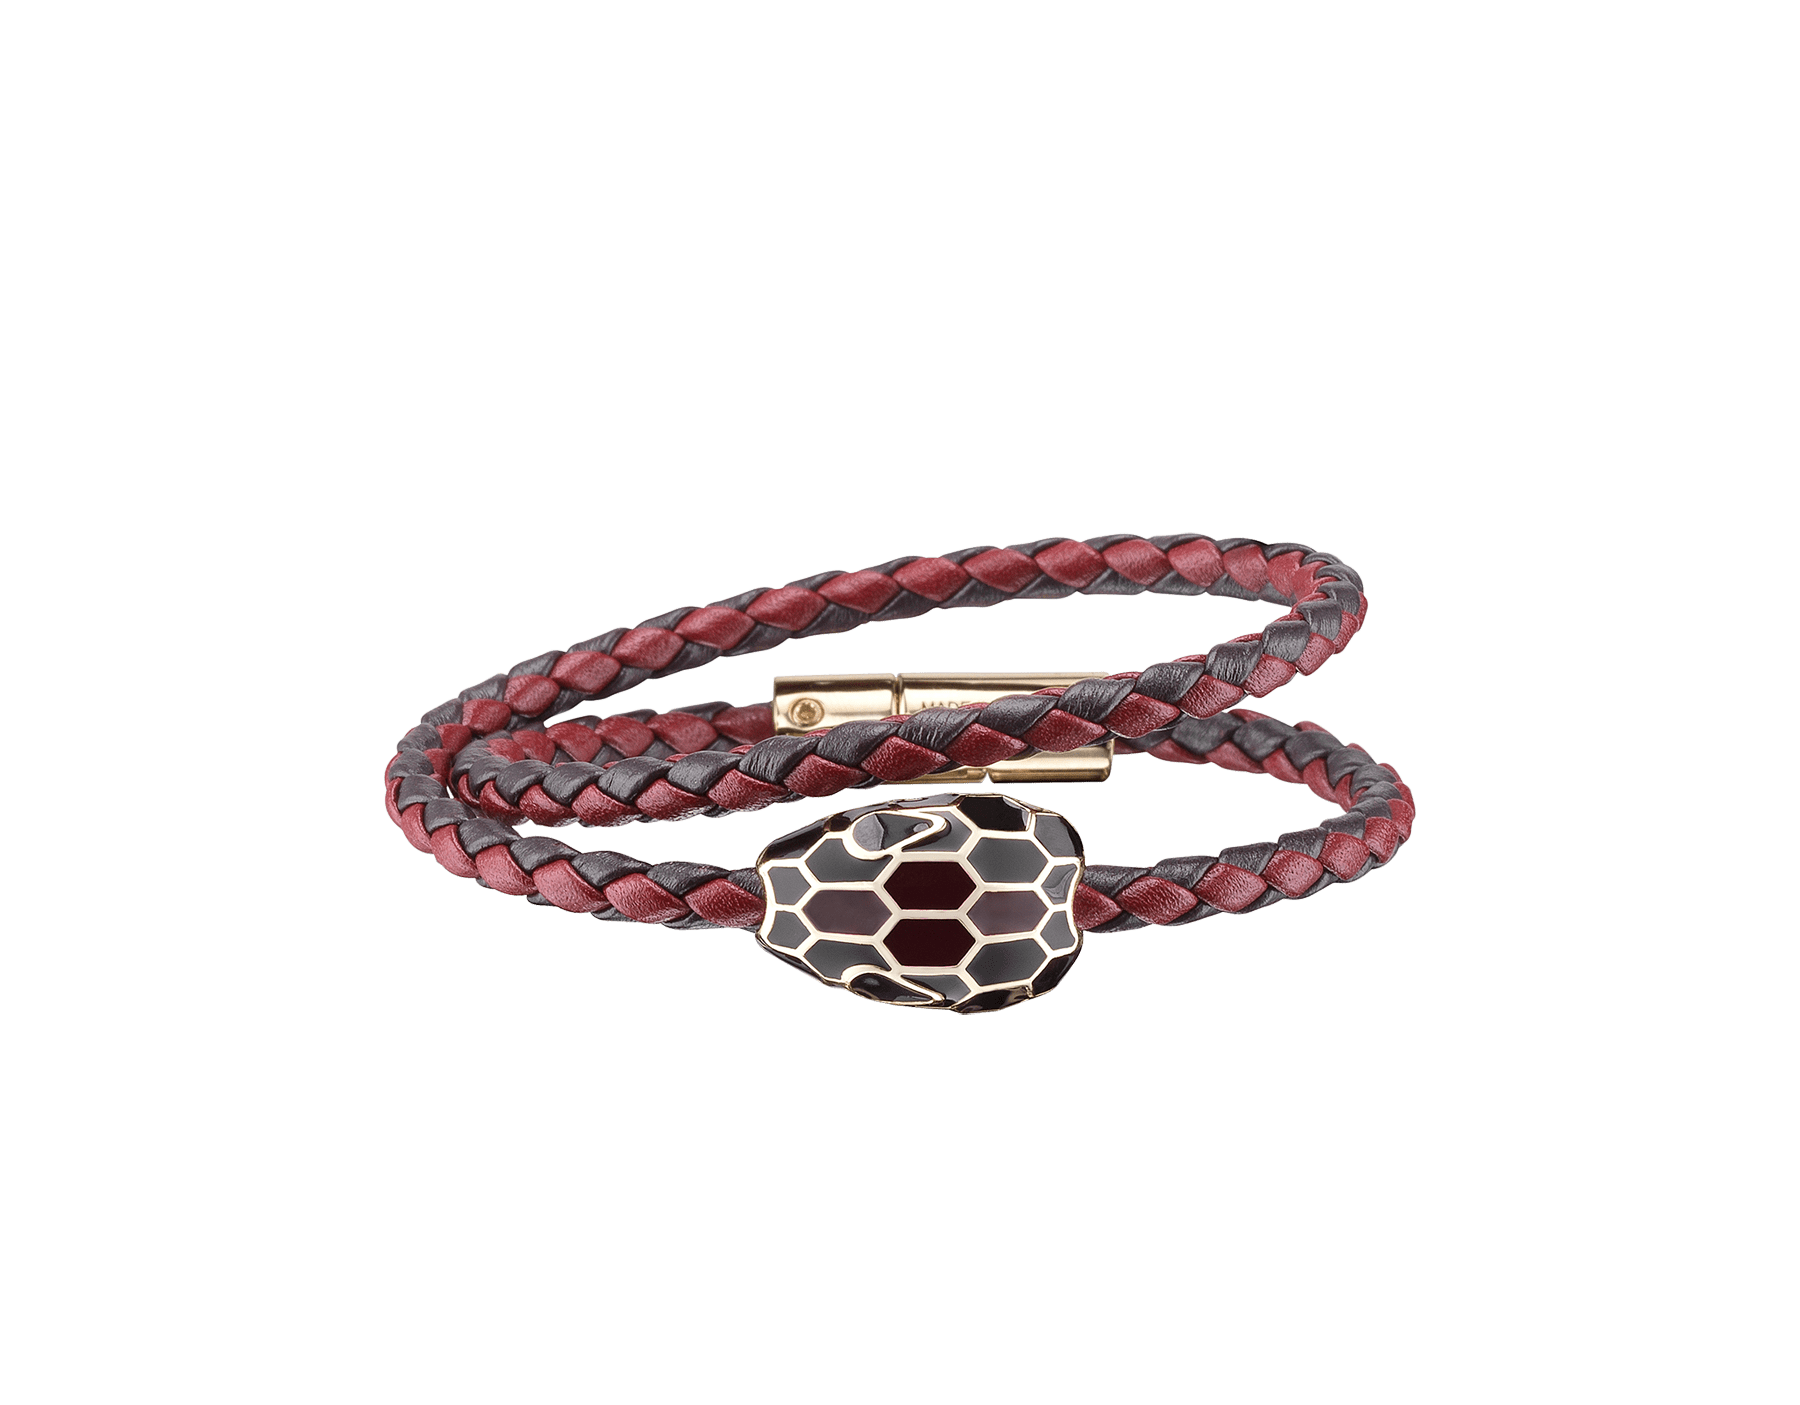 Serpenti Forevermulti-coiled braid bracelet in plum amethyst and roman garnet woven calf leather with an iconic snakehead décor in black and plum amethyst enamel. 288351 image 1